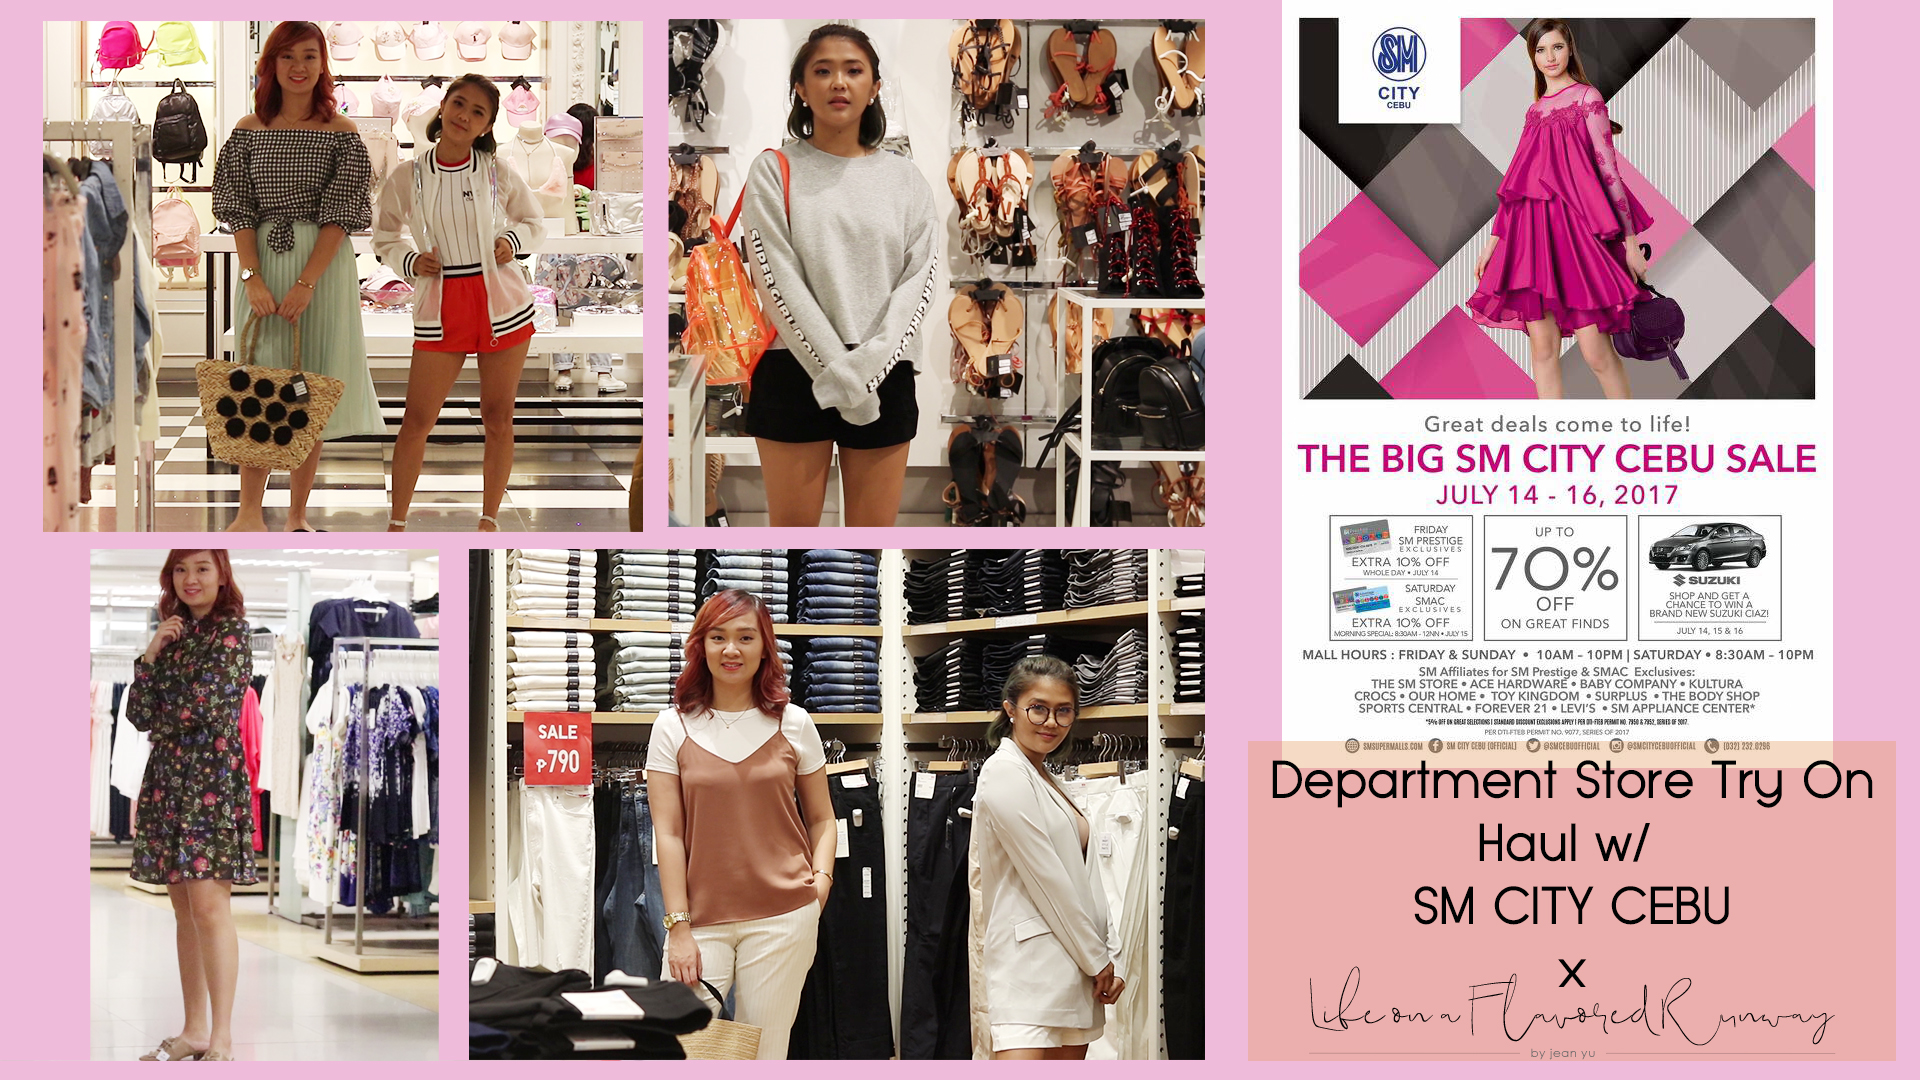 [VLOG] Department Store Try On Haul x SM City Cebu x Jean Yu (Life On A Flavored Runway) for SM 3 DAY SALE